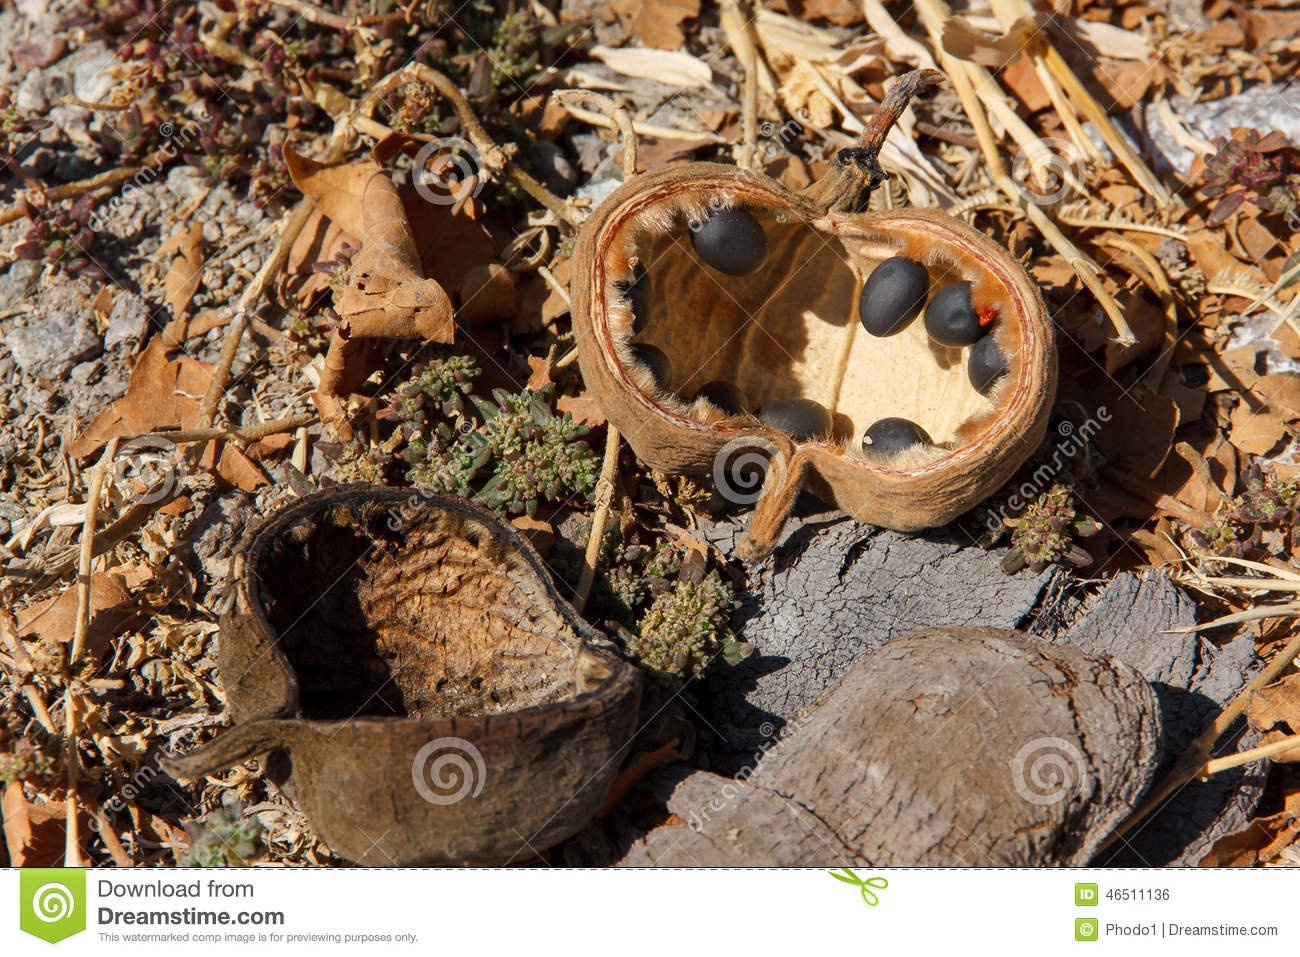 Baobab Tree Fruit And Seeds Fallen On The Ground Stock Photo.